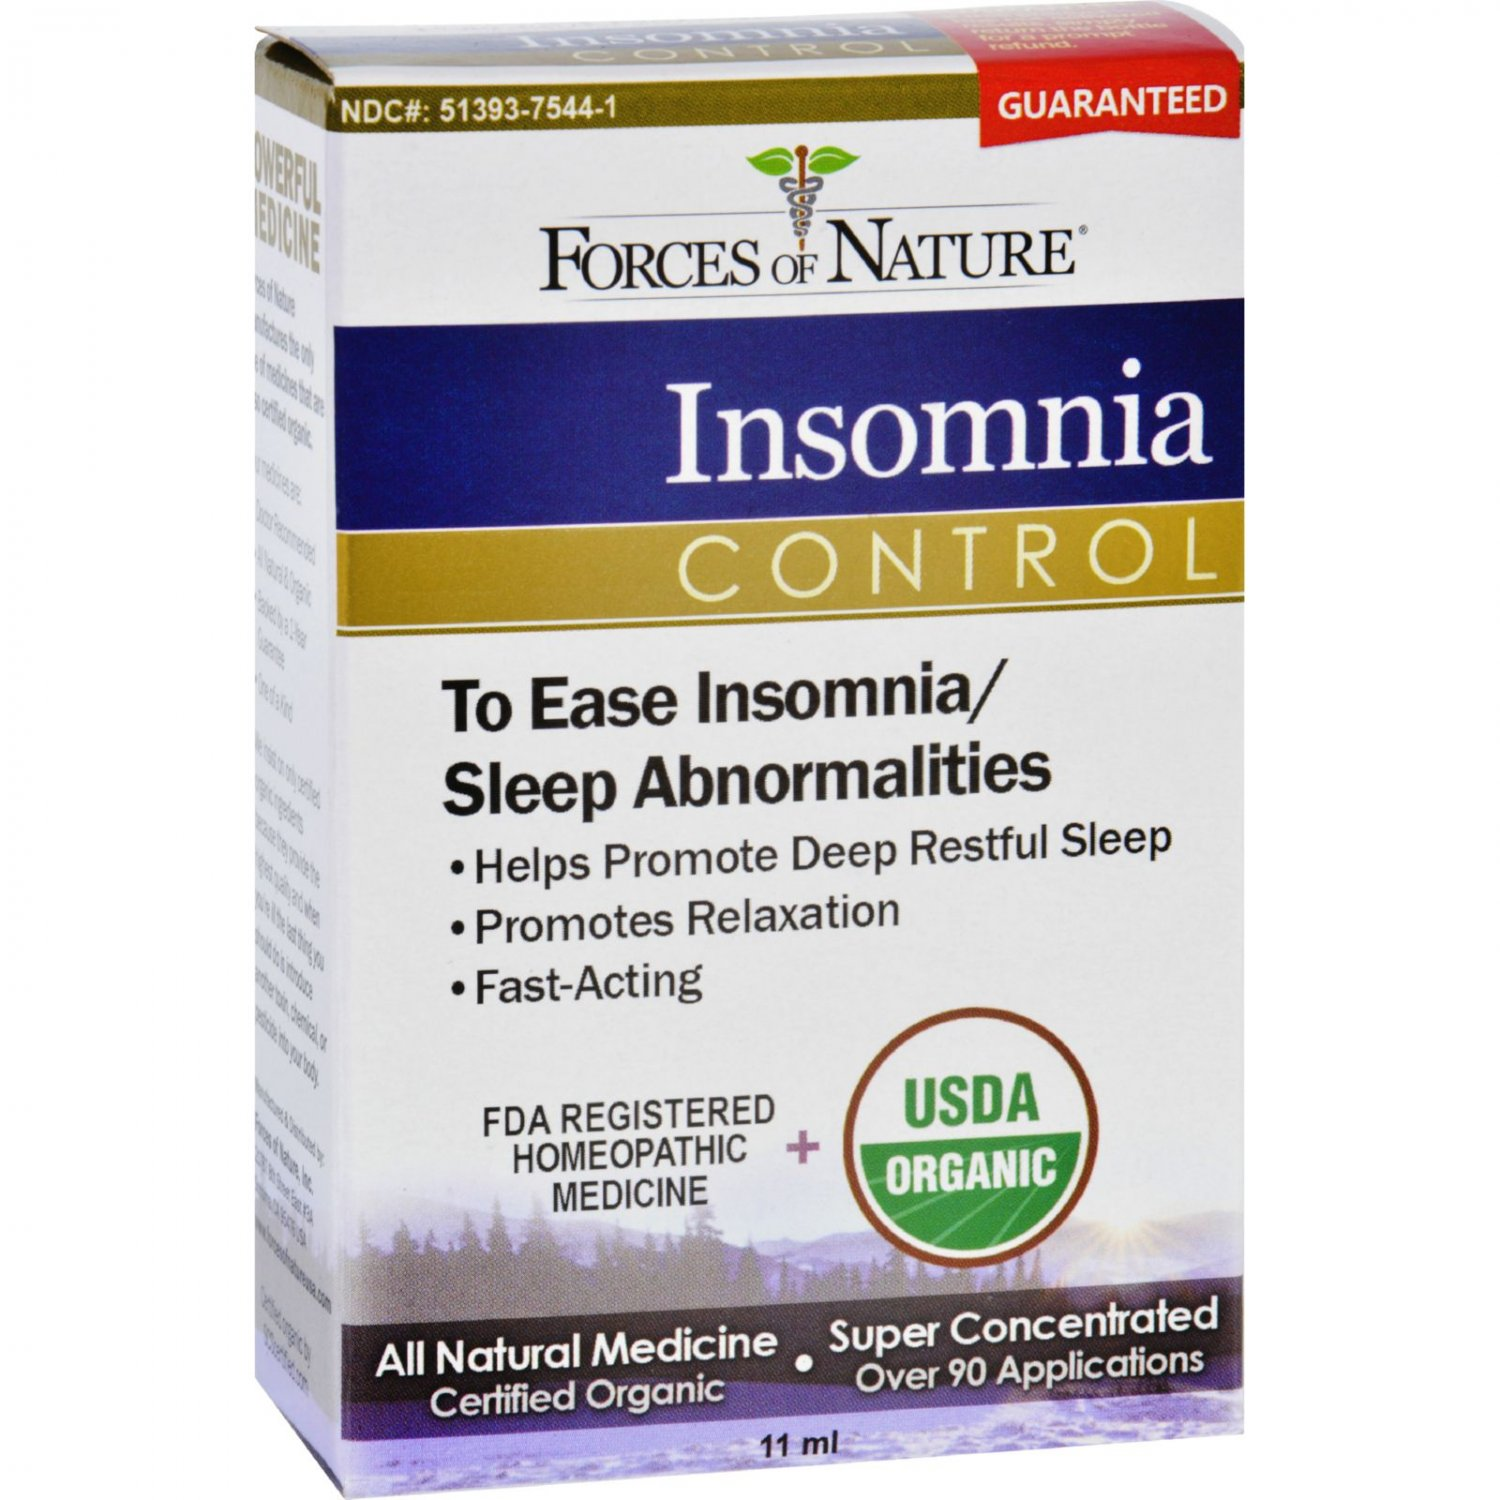 Forces of Nature Organic Insomnia Control - 11 ml